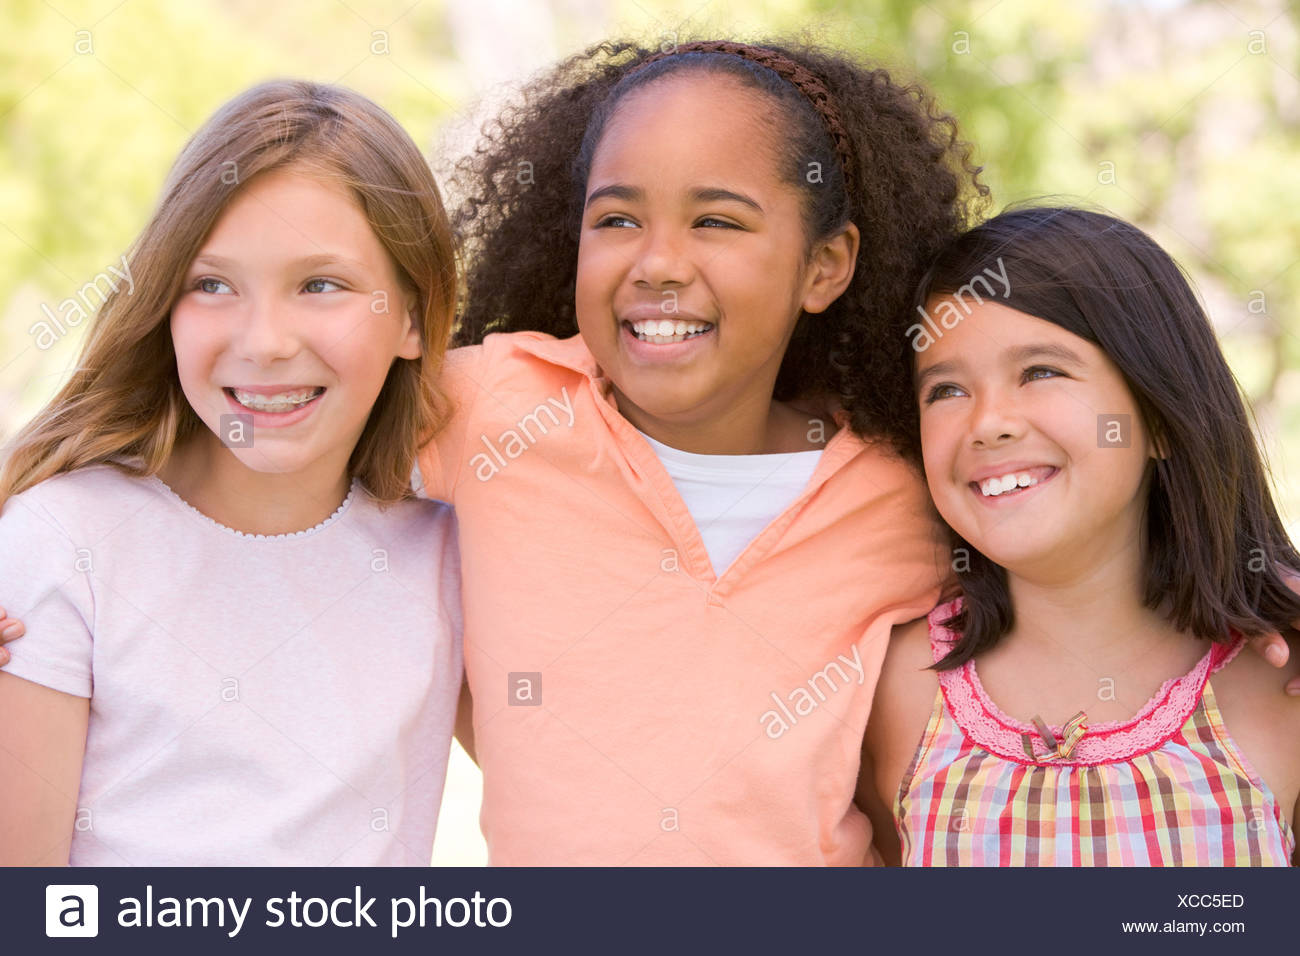 Trois jeunes girl friends outdoors smiling Photo Stock